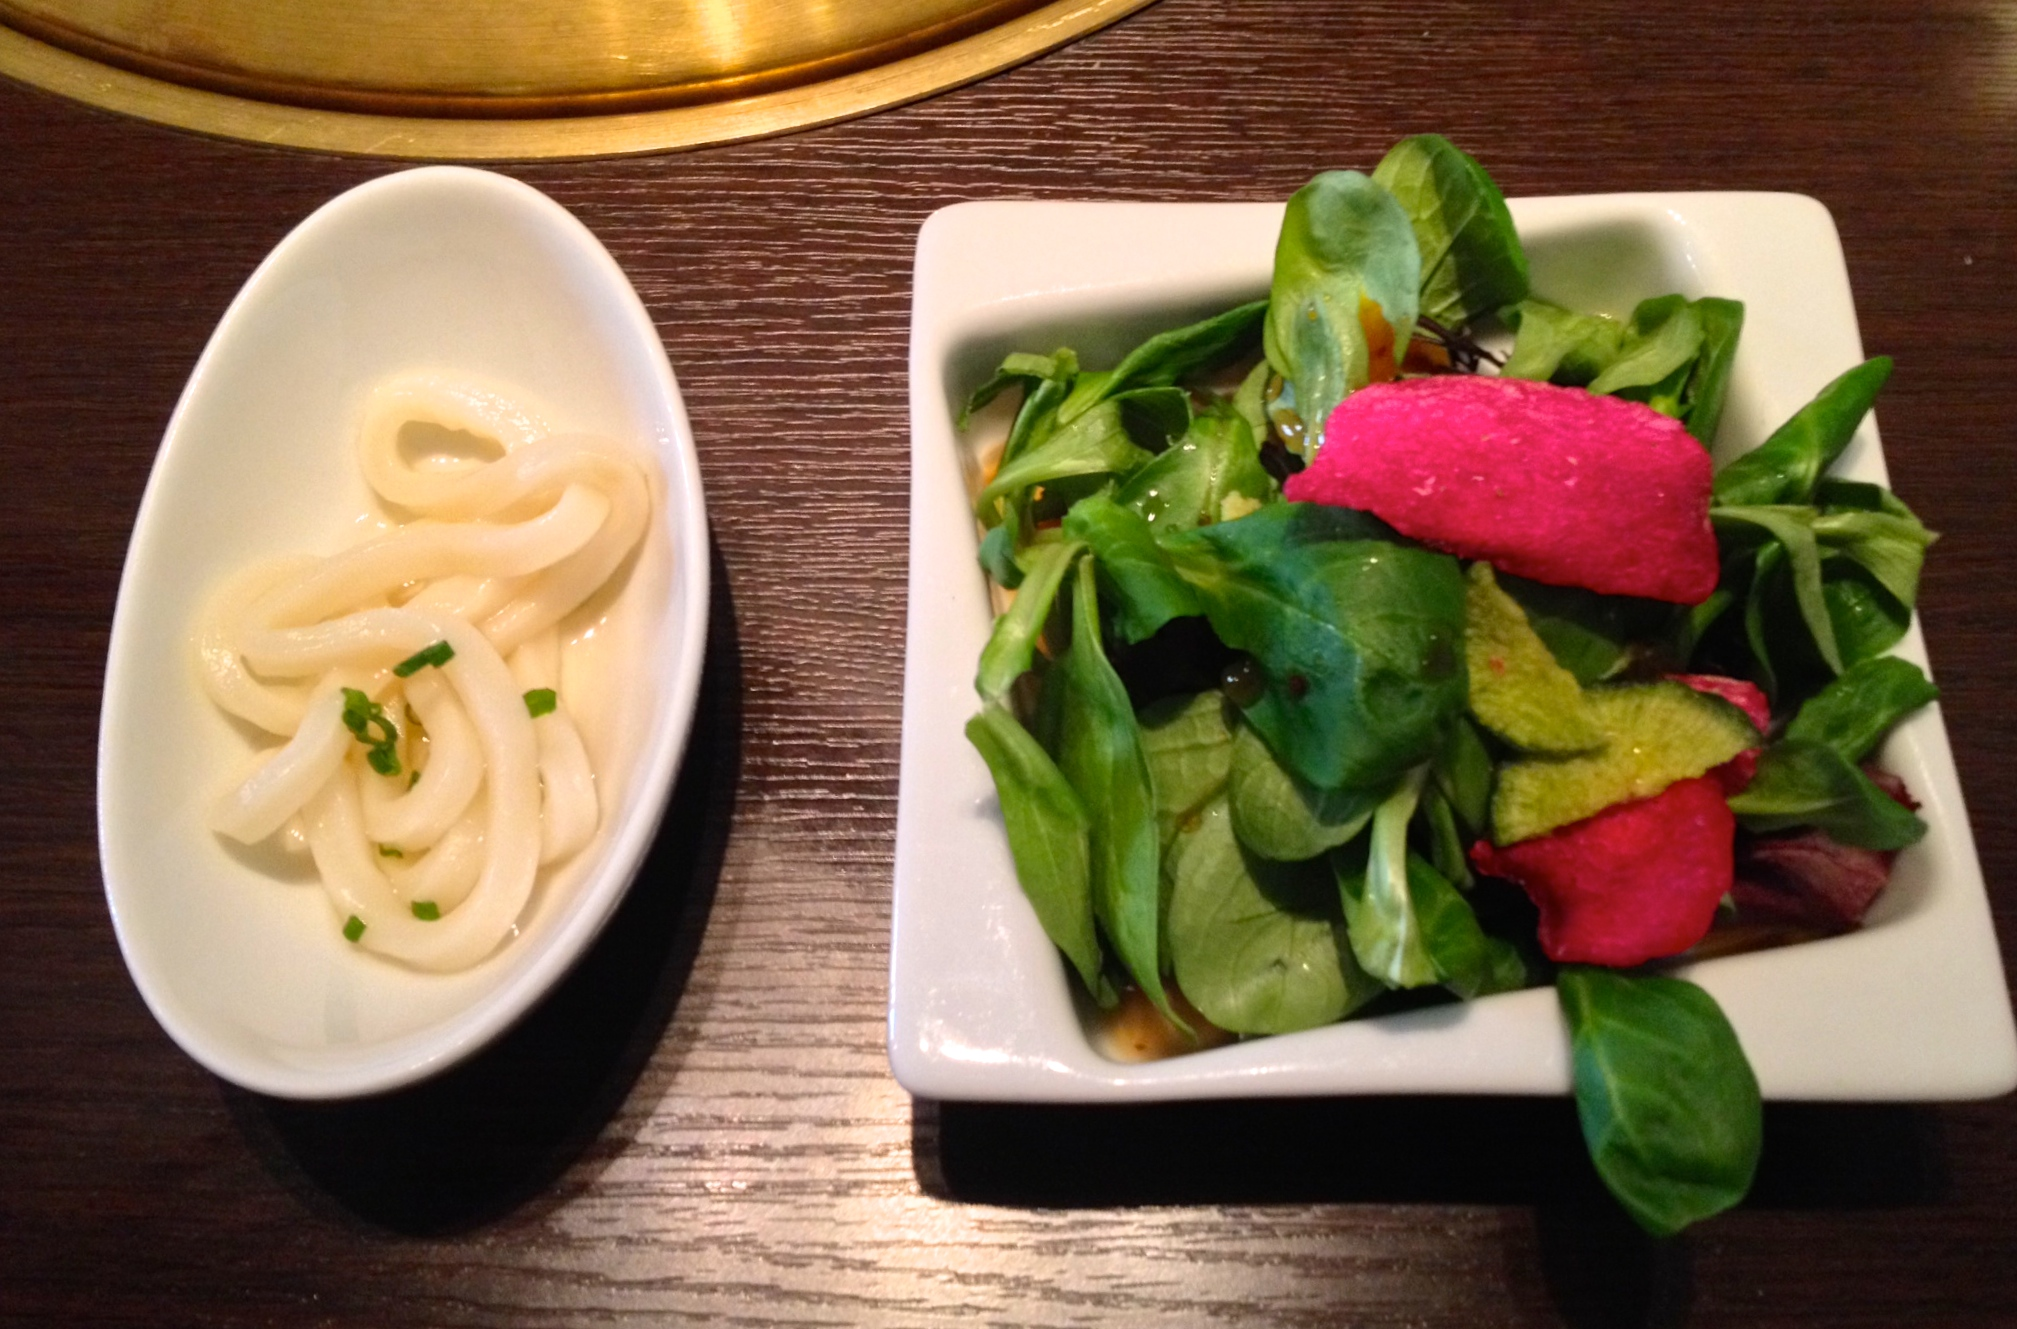 Udon noodles and a small salad with red beet chips